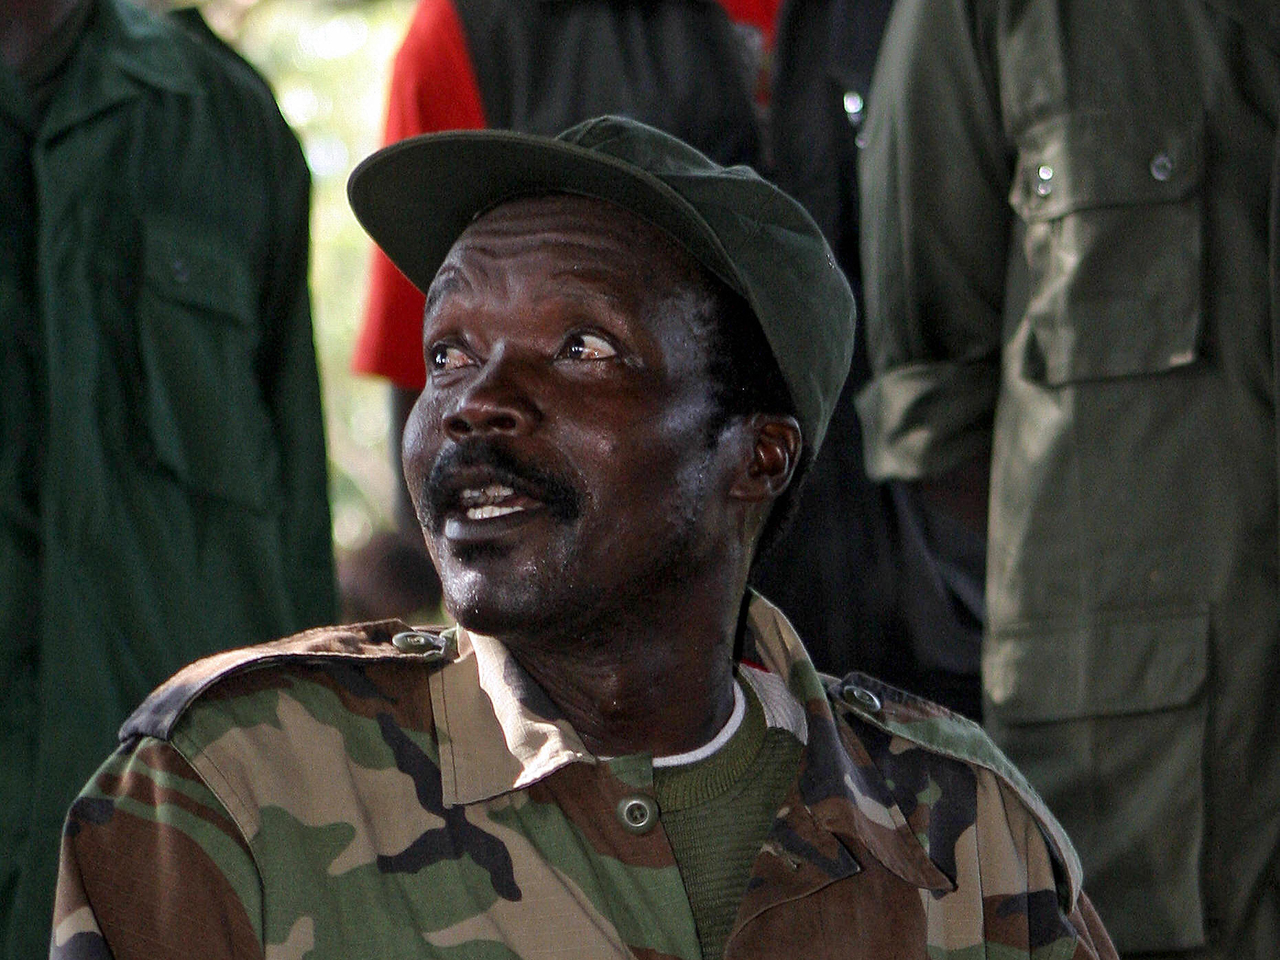 joseph kony Shannon sedgwick davis, a lawyer and activist from san antonio, has played a unique role in the long war against joseph kony.